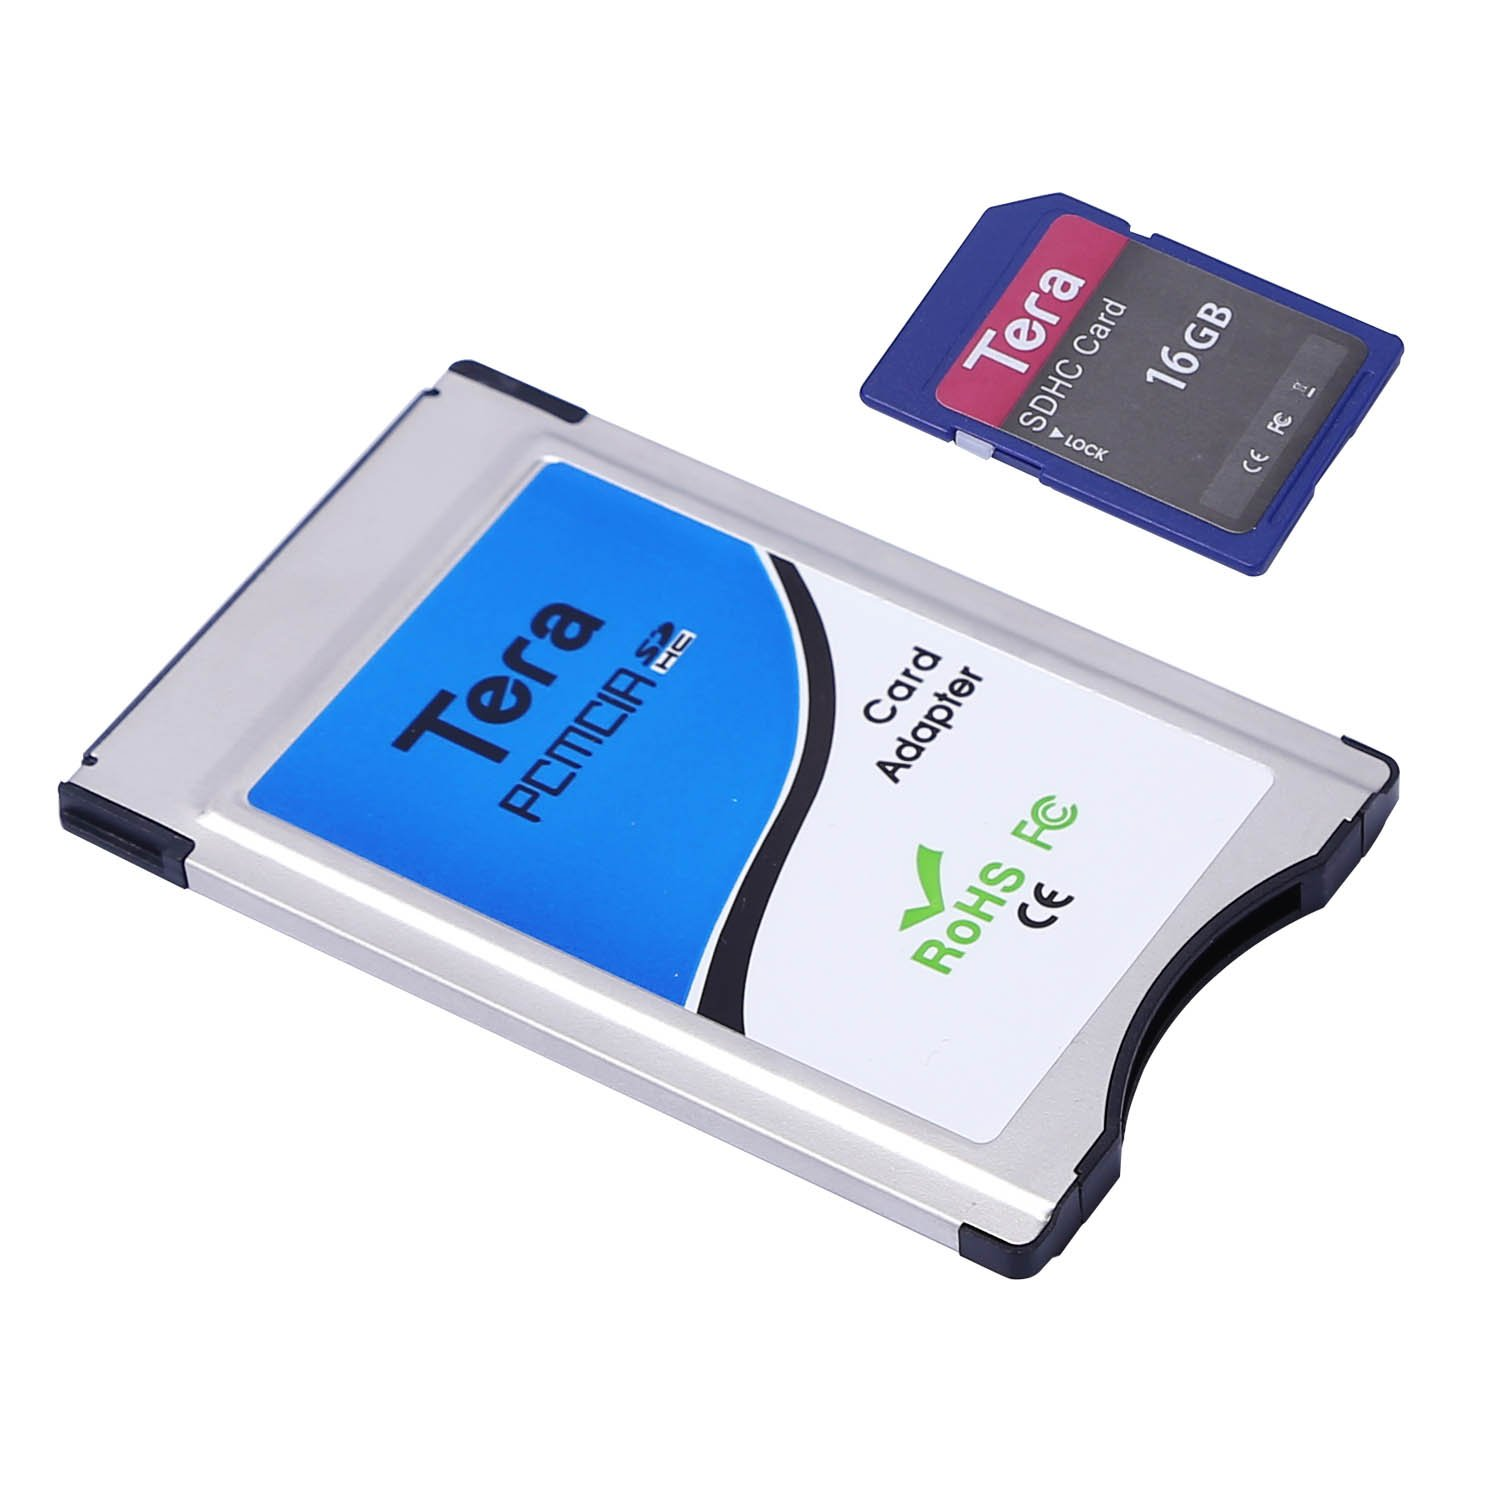 DAZZLE PCMCIA CARD READER WINDOWS 7 X64 DRIVER DOWNLOAD